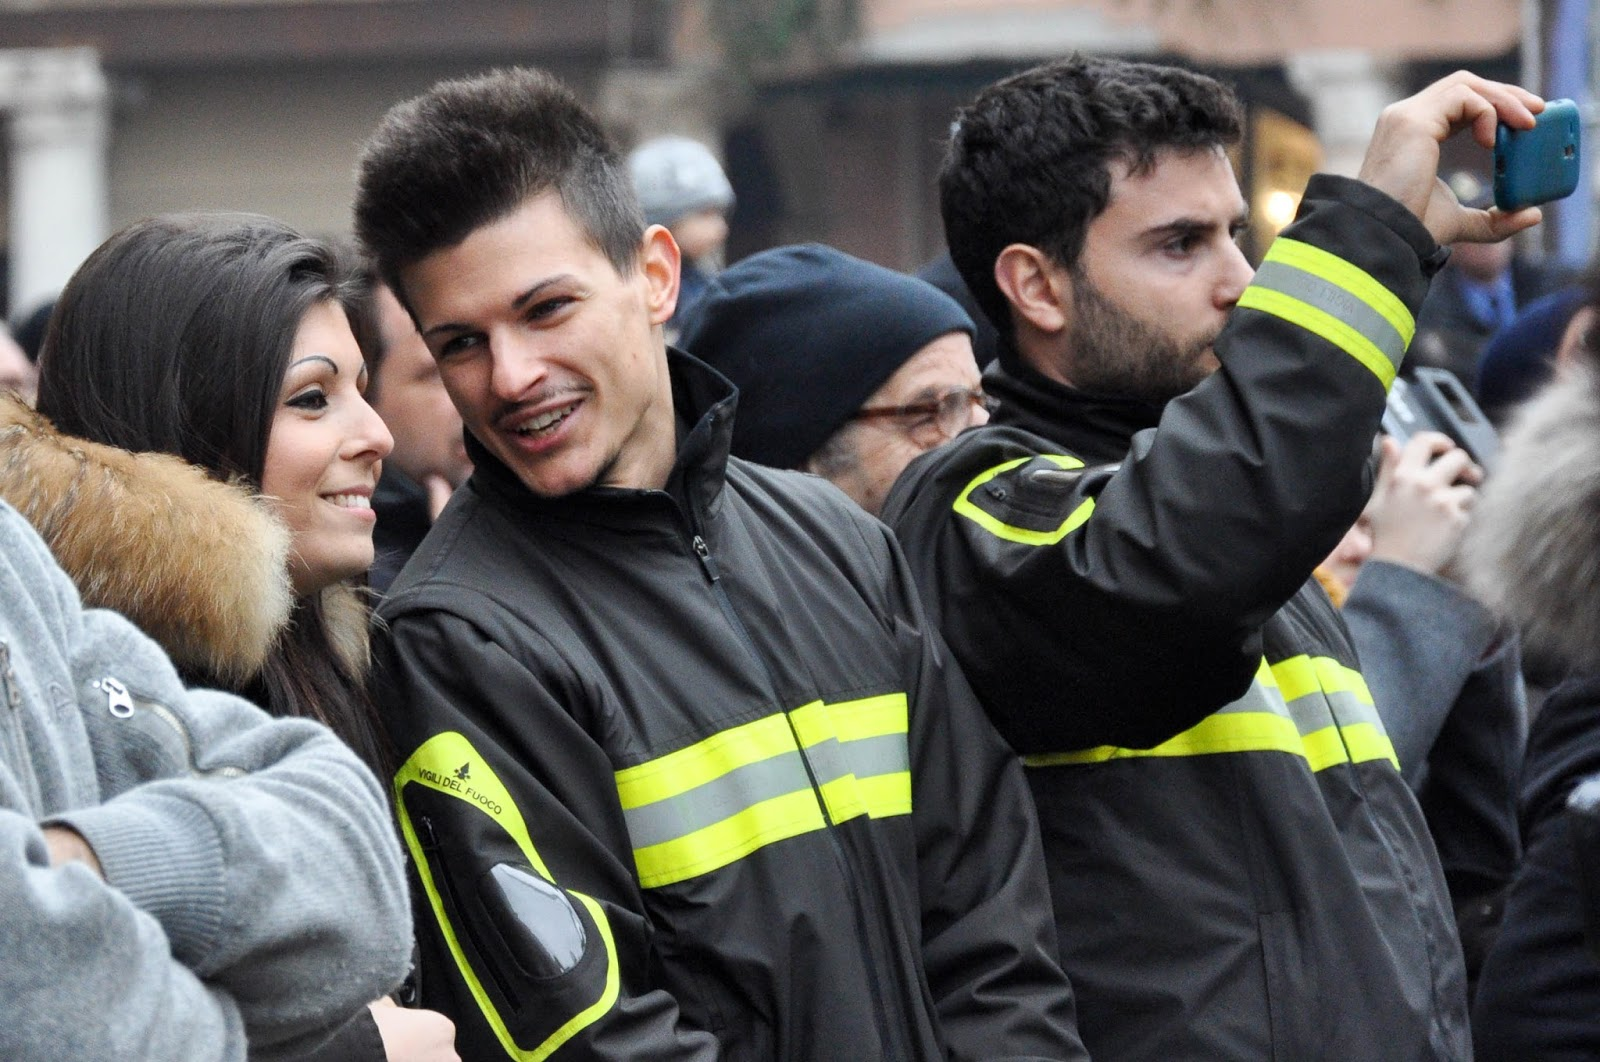 Firefighters watching their colleagues' demonstration on Piazza dei Signori, Saint Barbara celebration, Vicenza, Veneto, Italy